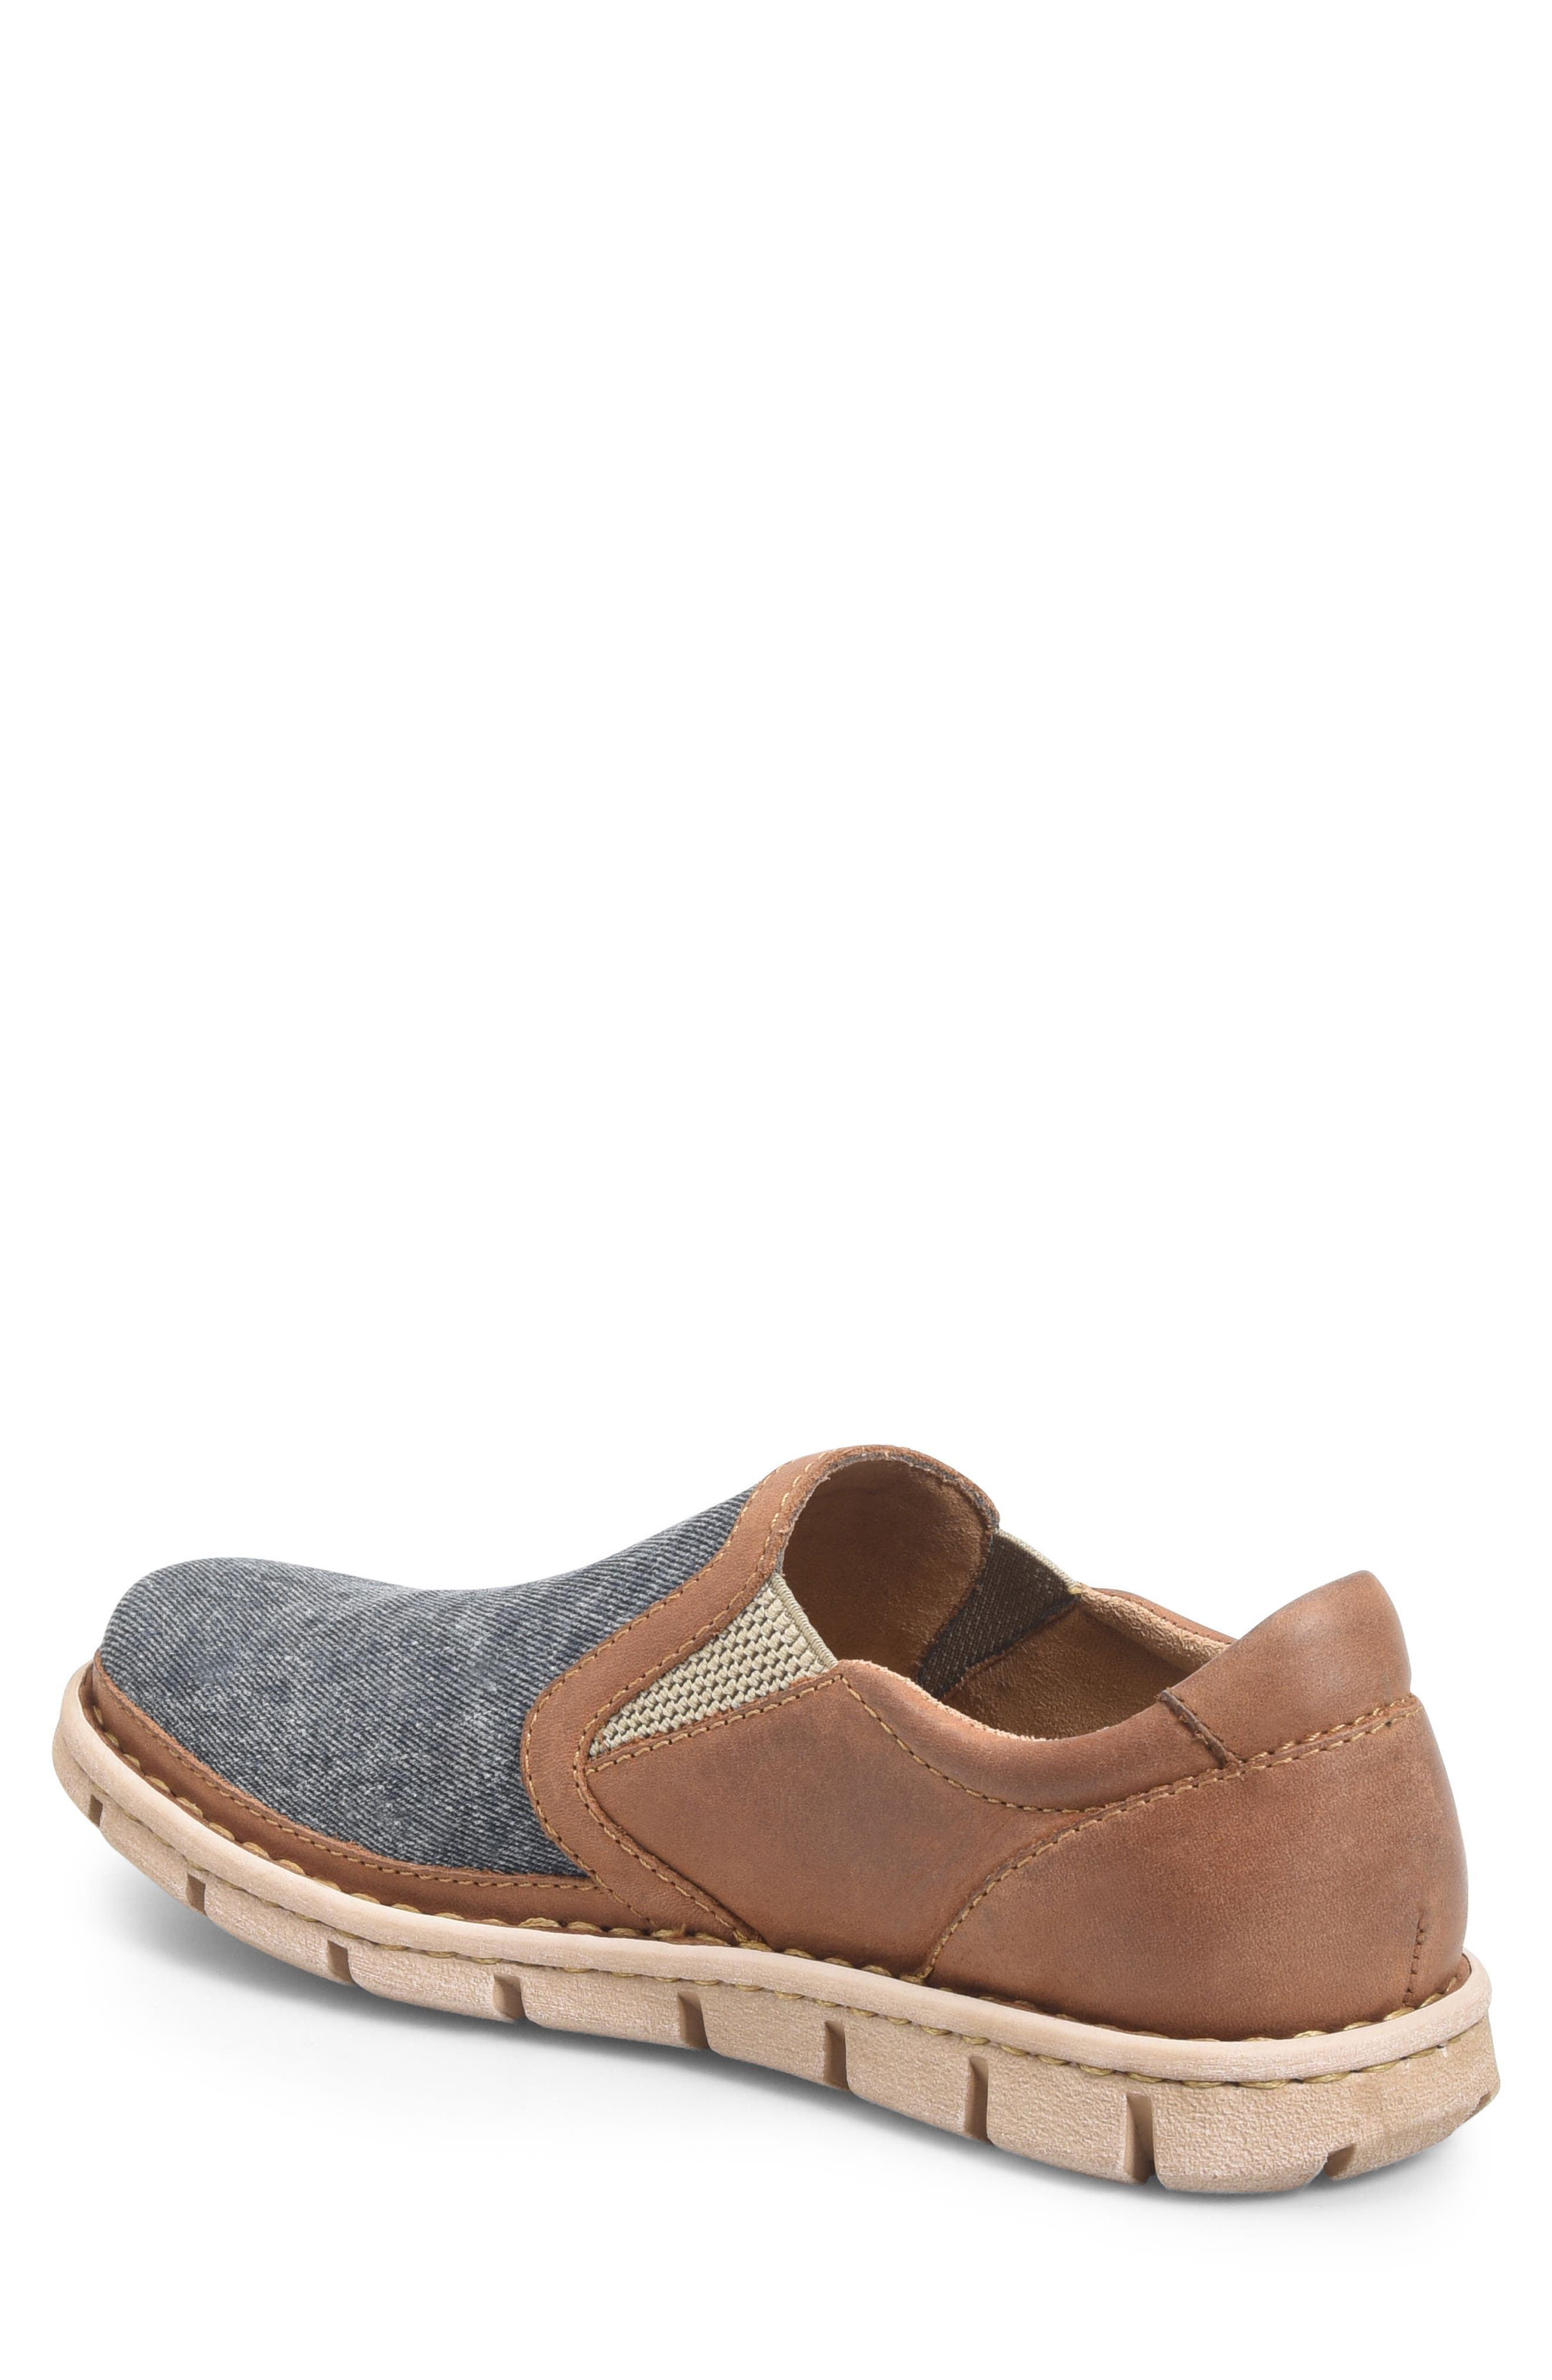 'Sawyer' Leather Slip-On,                             Alternate thumbnail 2, color,                             Navy/ Light Brown Canvas